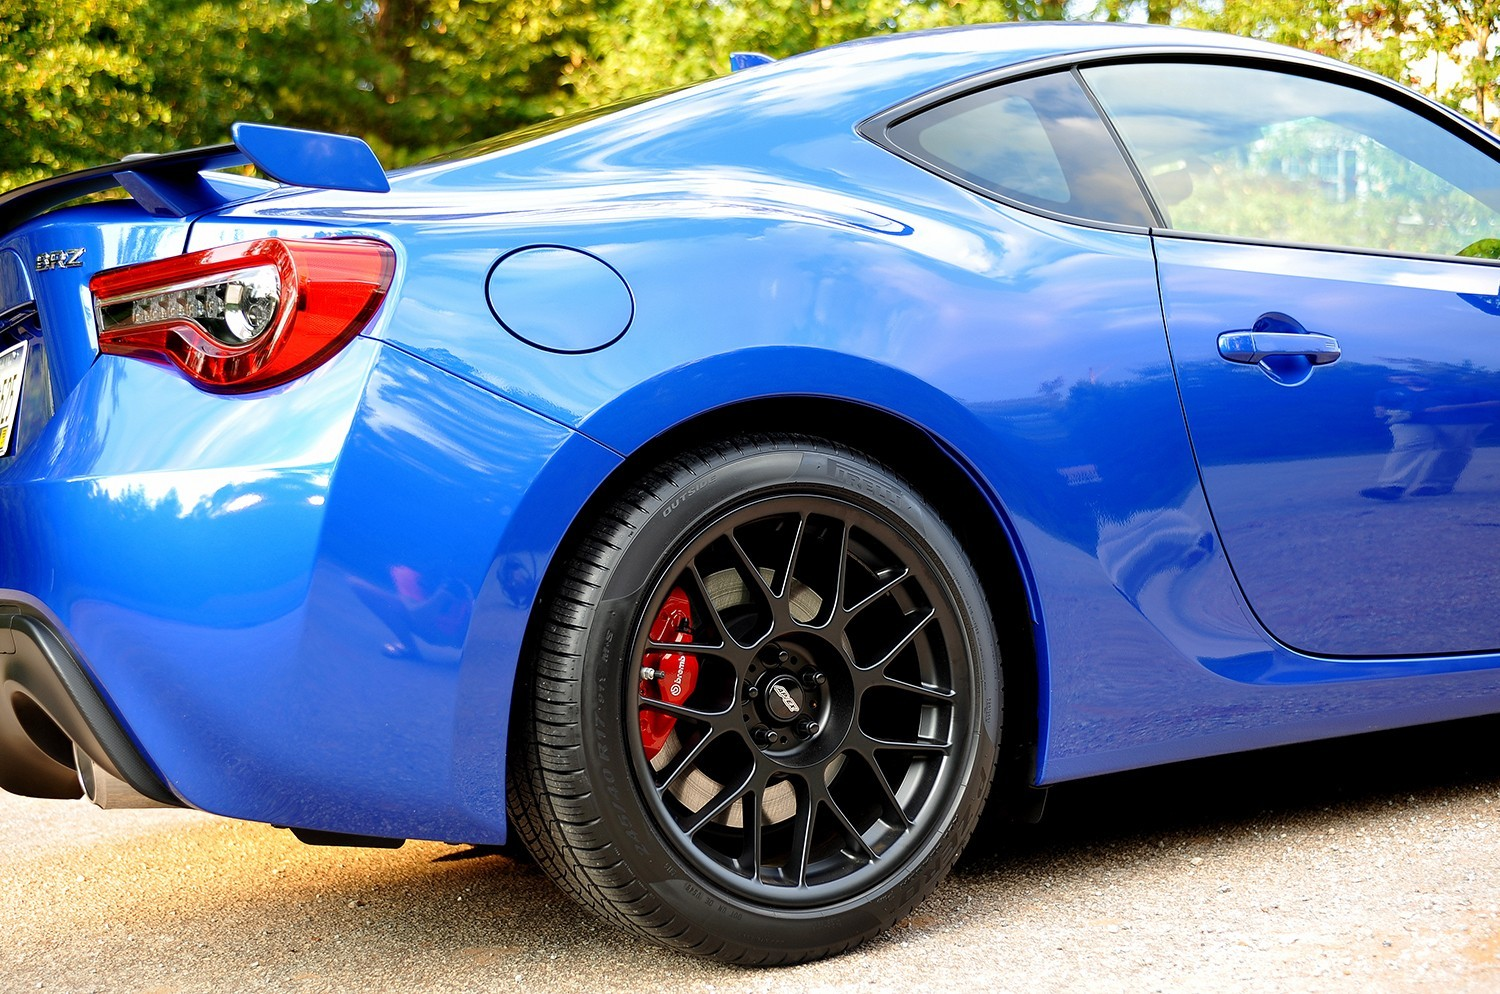 "Subaru BRZ<br />Satin Black 17x9"" ET42 ARC-8 wheels with 245/45-17 Pirelli P-Zero tires<br />Mods: BRZ Performance Package, Brembo BBK, RCE Yellow lowering springs"